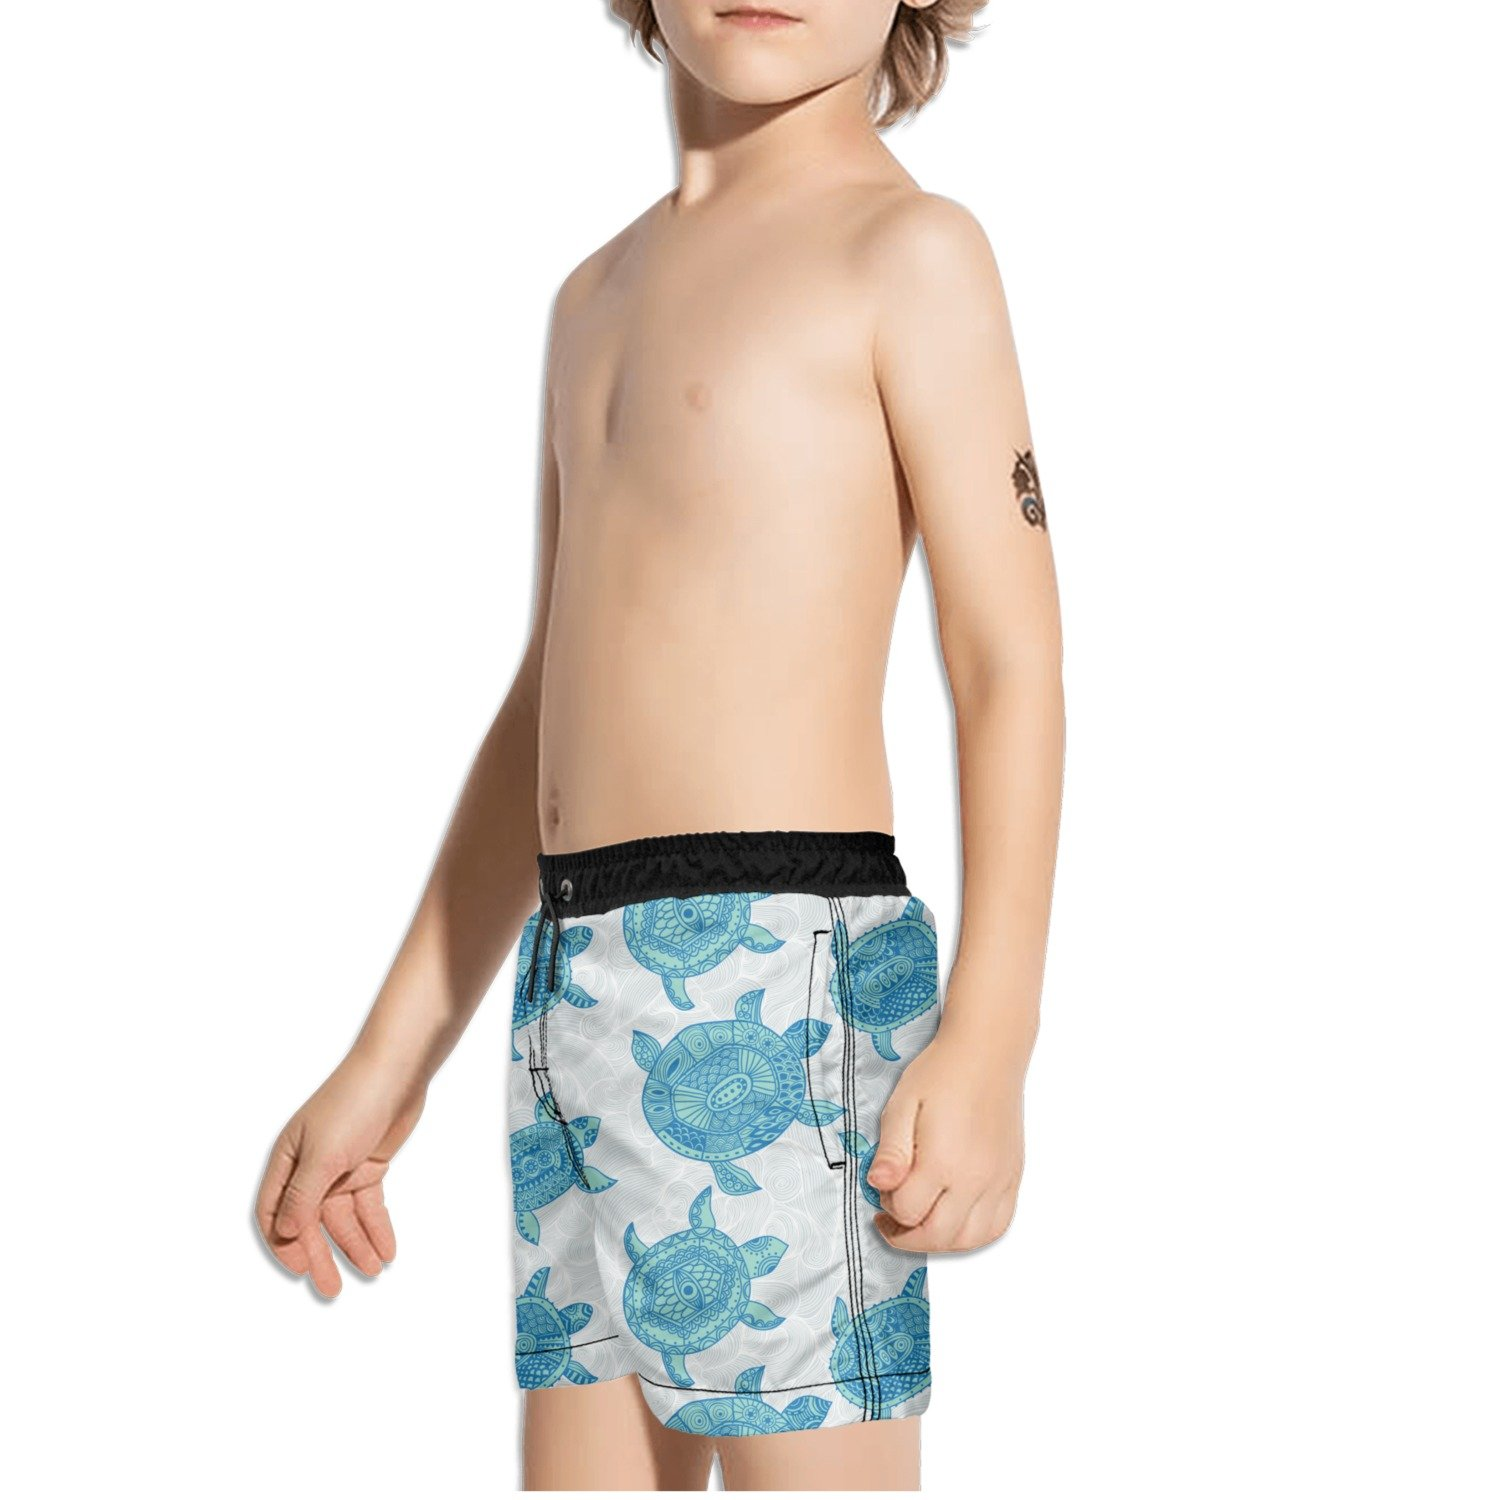 FullBo Turtles and Wave Pattern Little Boys Short Swim Trunks Quick Dry Beach Shorts